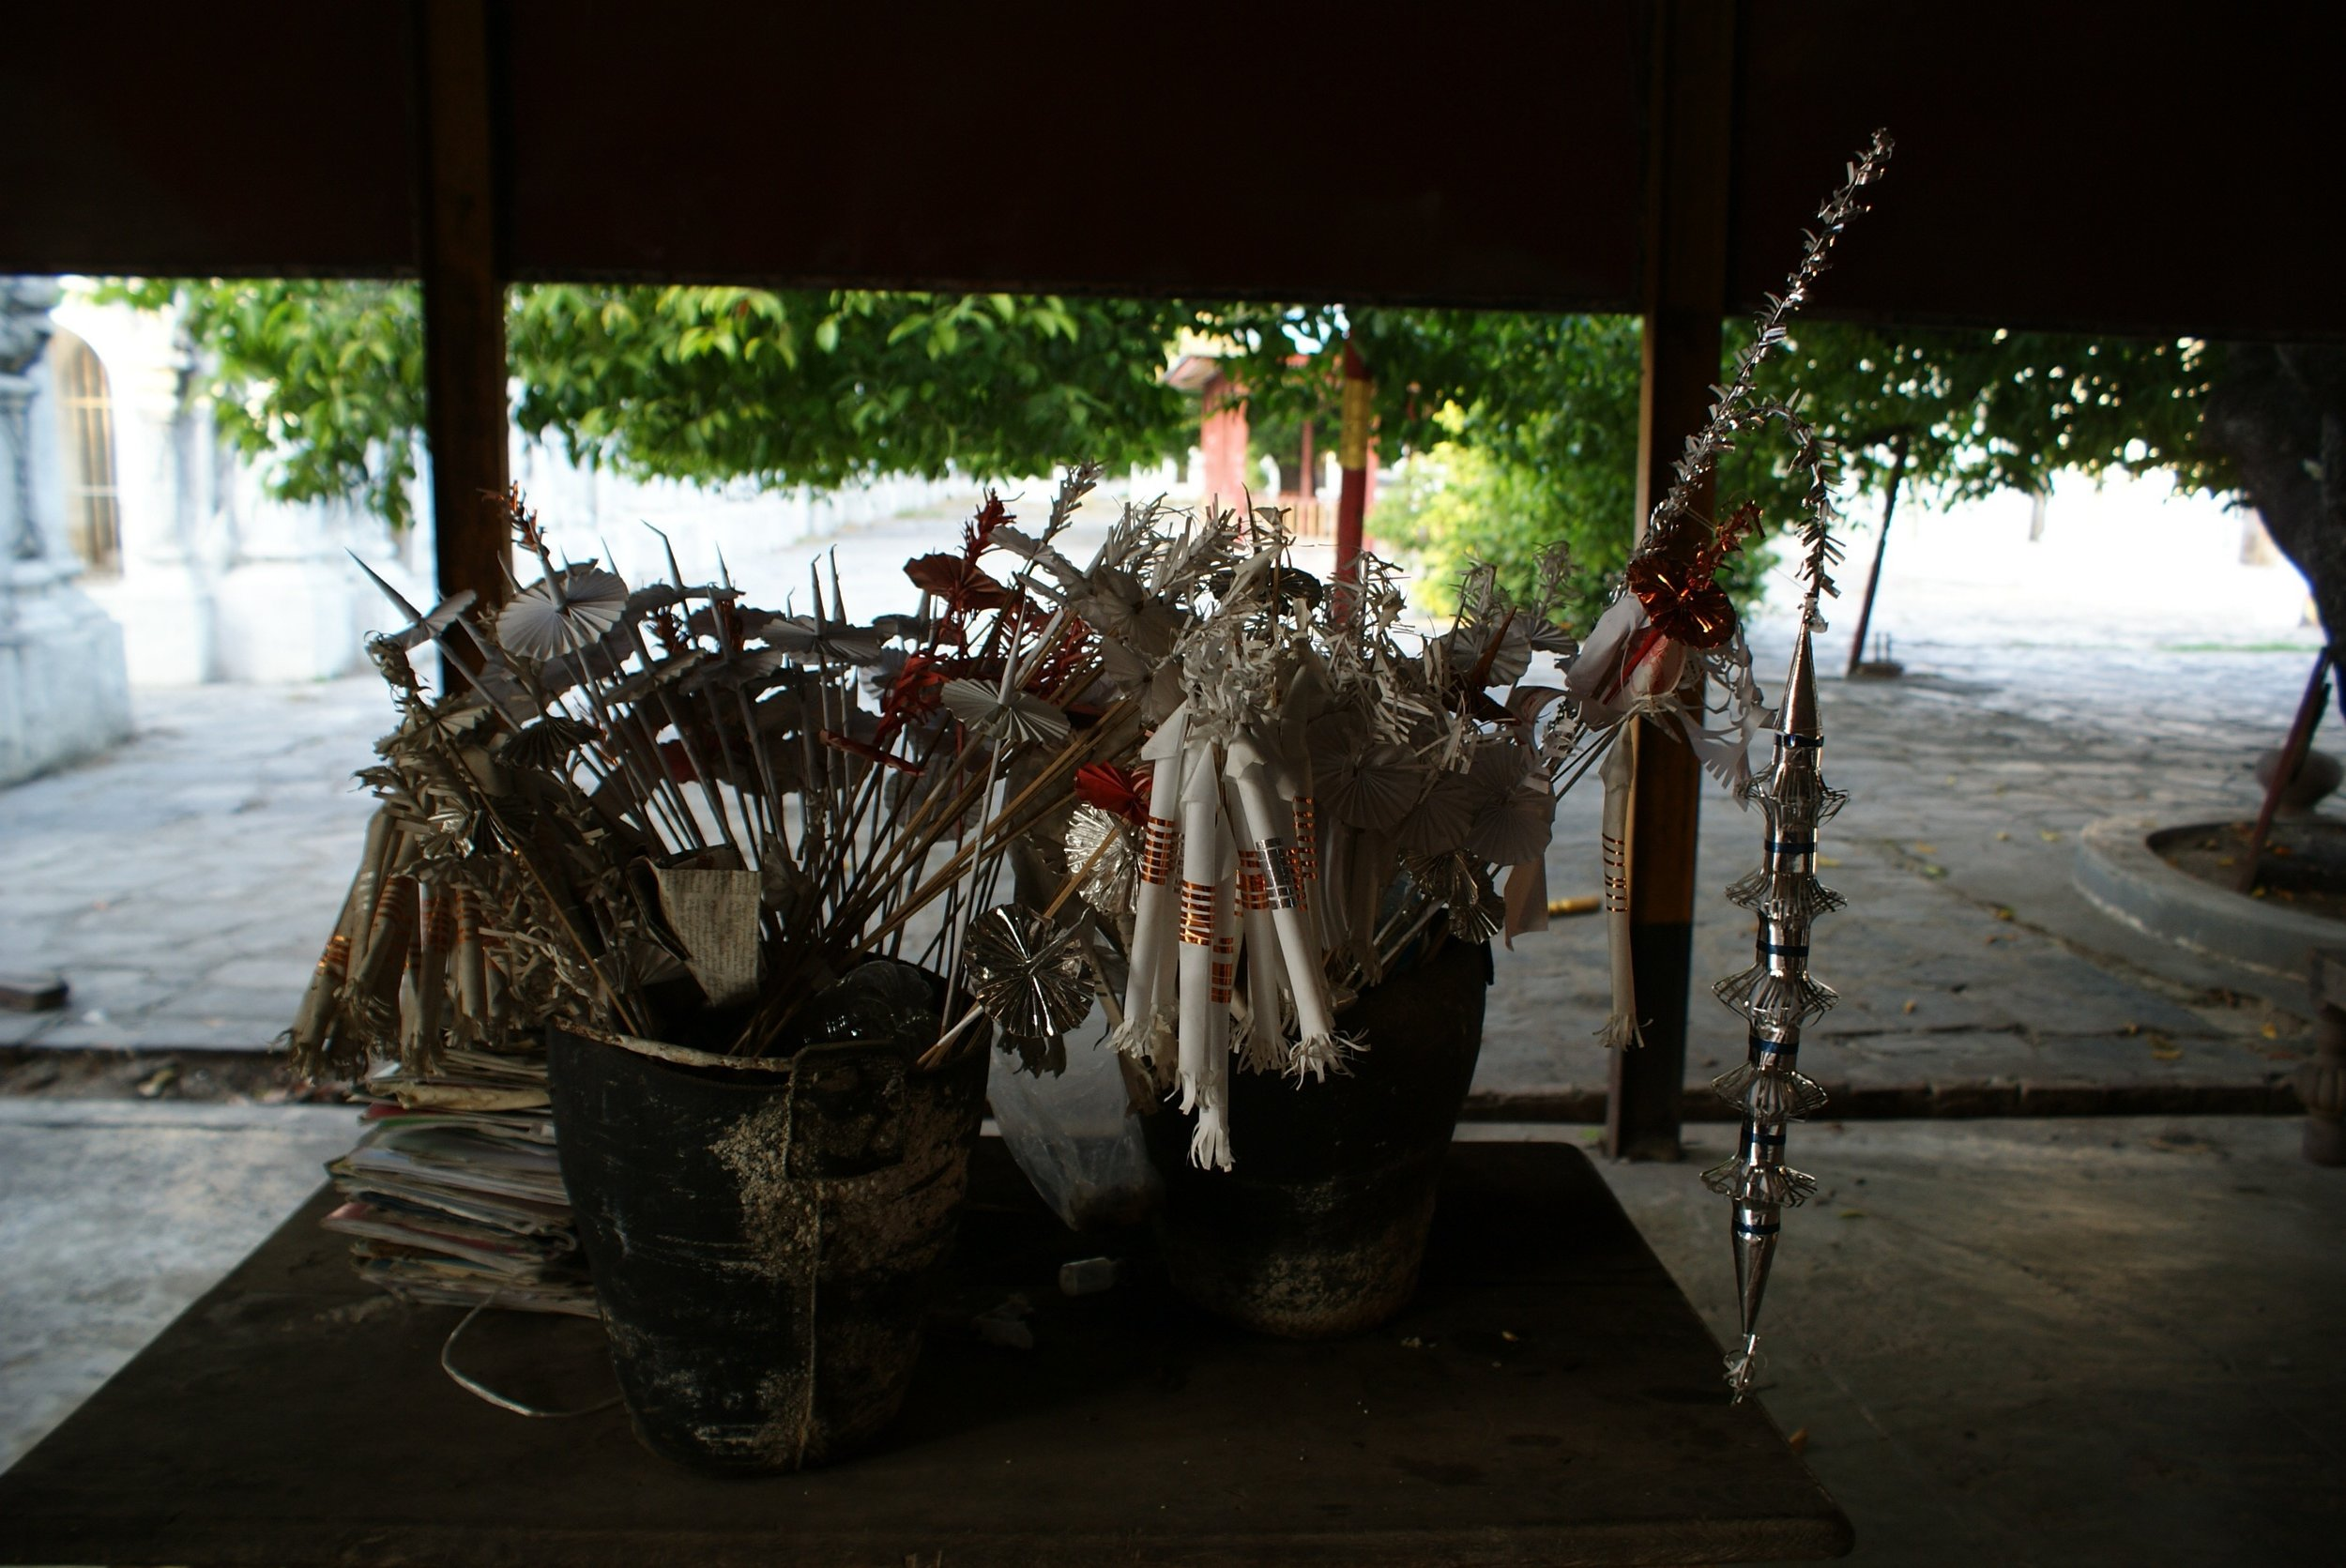 Intricately folded paper offerings for sale at the temple.  They will be burned as a blessing and gifts for the deceased..